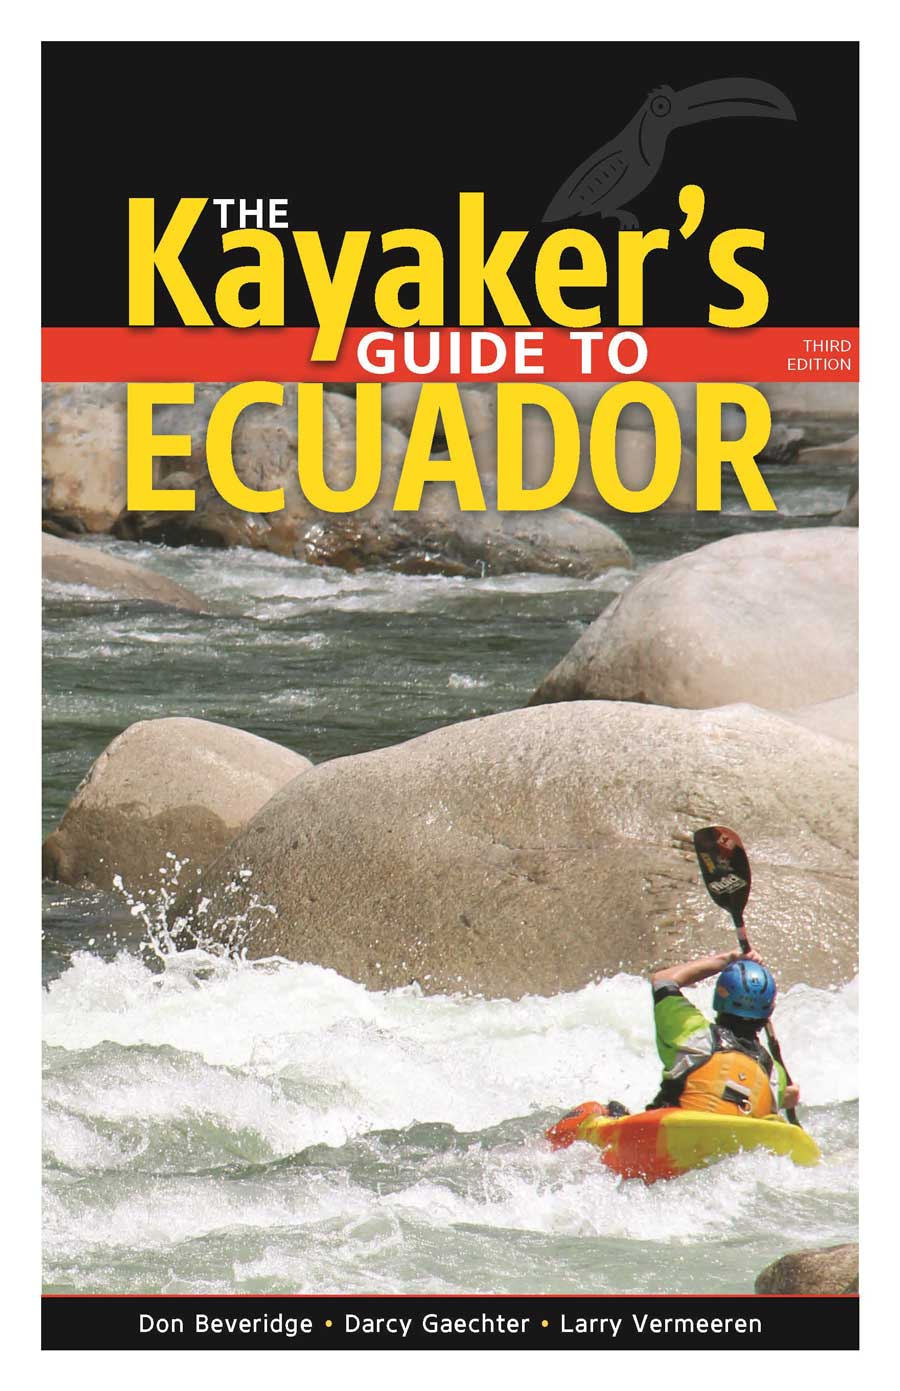 Kayaker's Guide to Ecuador, Kayak Ecuador, kayaking in Ecuador, Ecuador kayaking, kayak ecuador, ecuador paddling, padding south america, kayaking south america